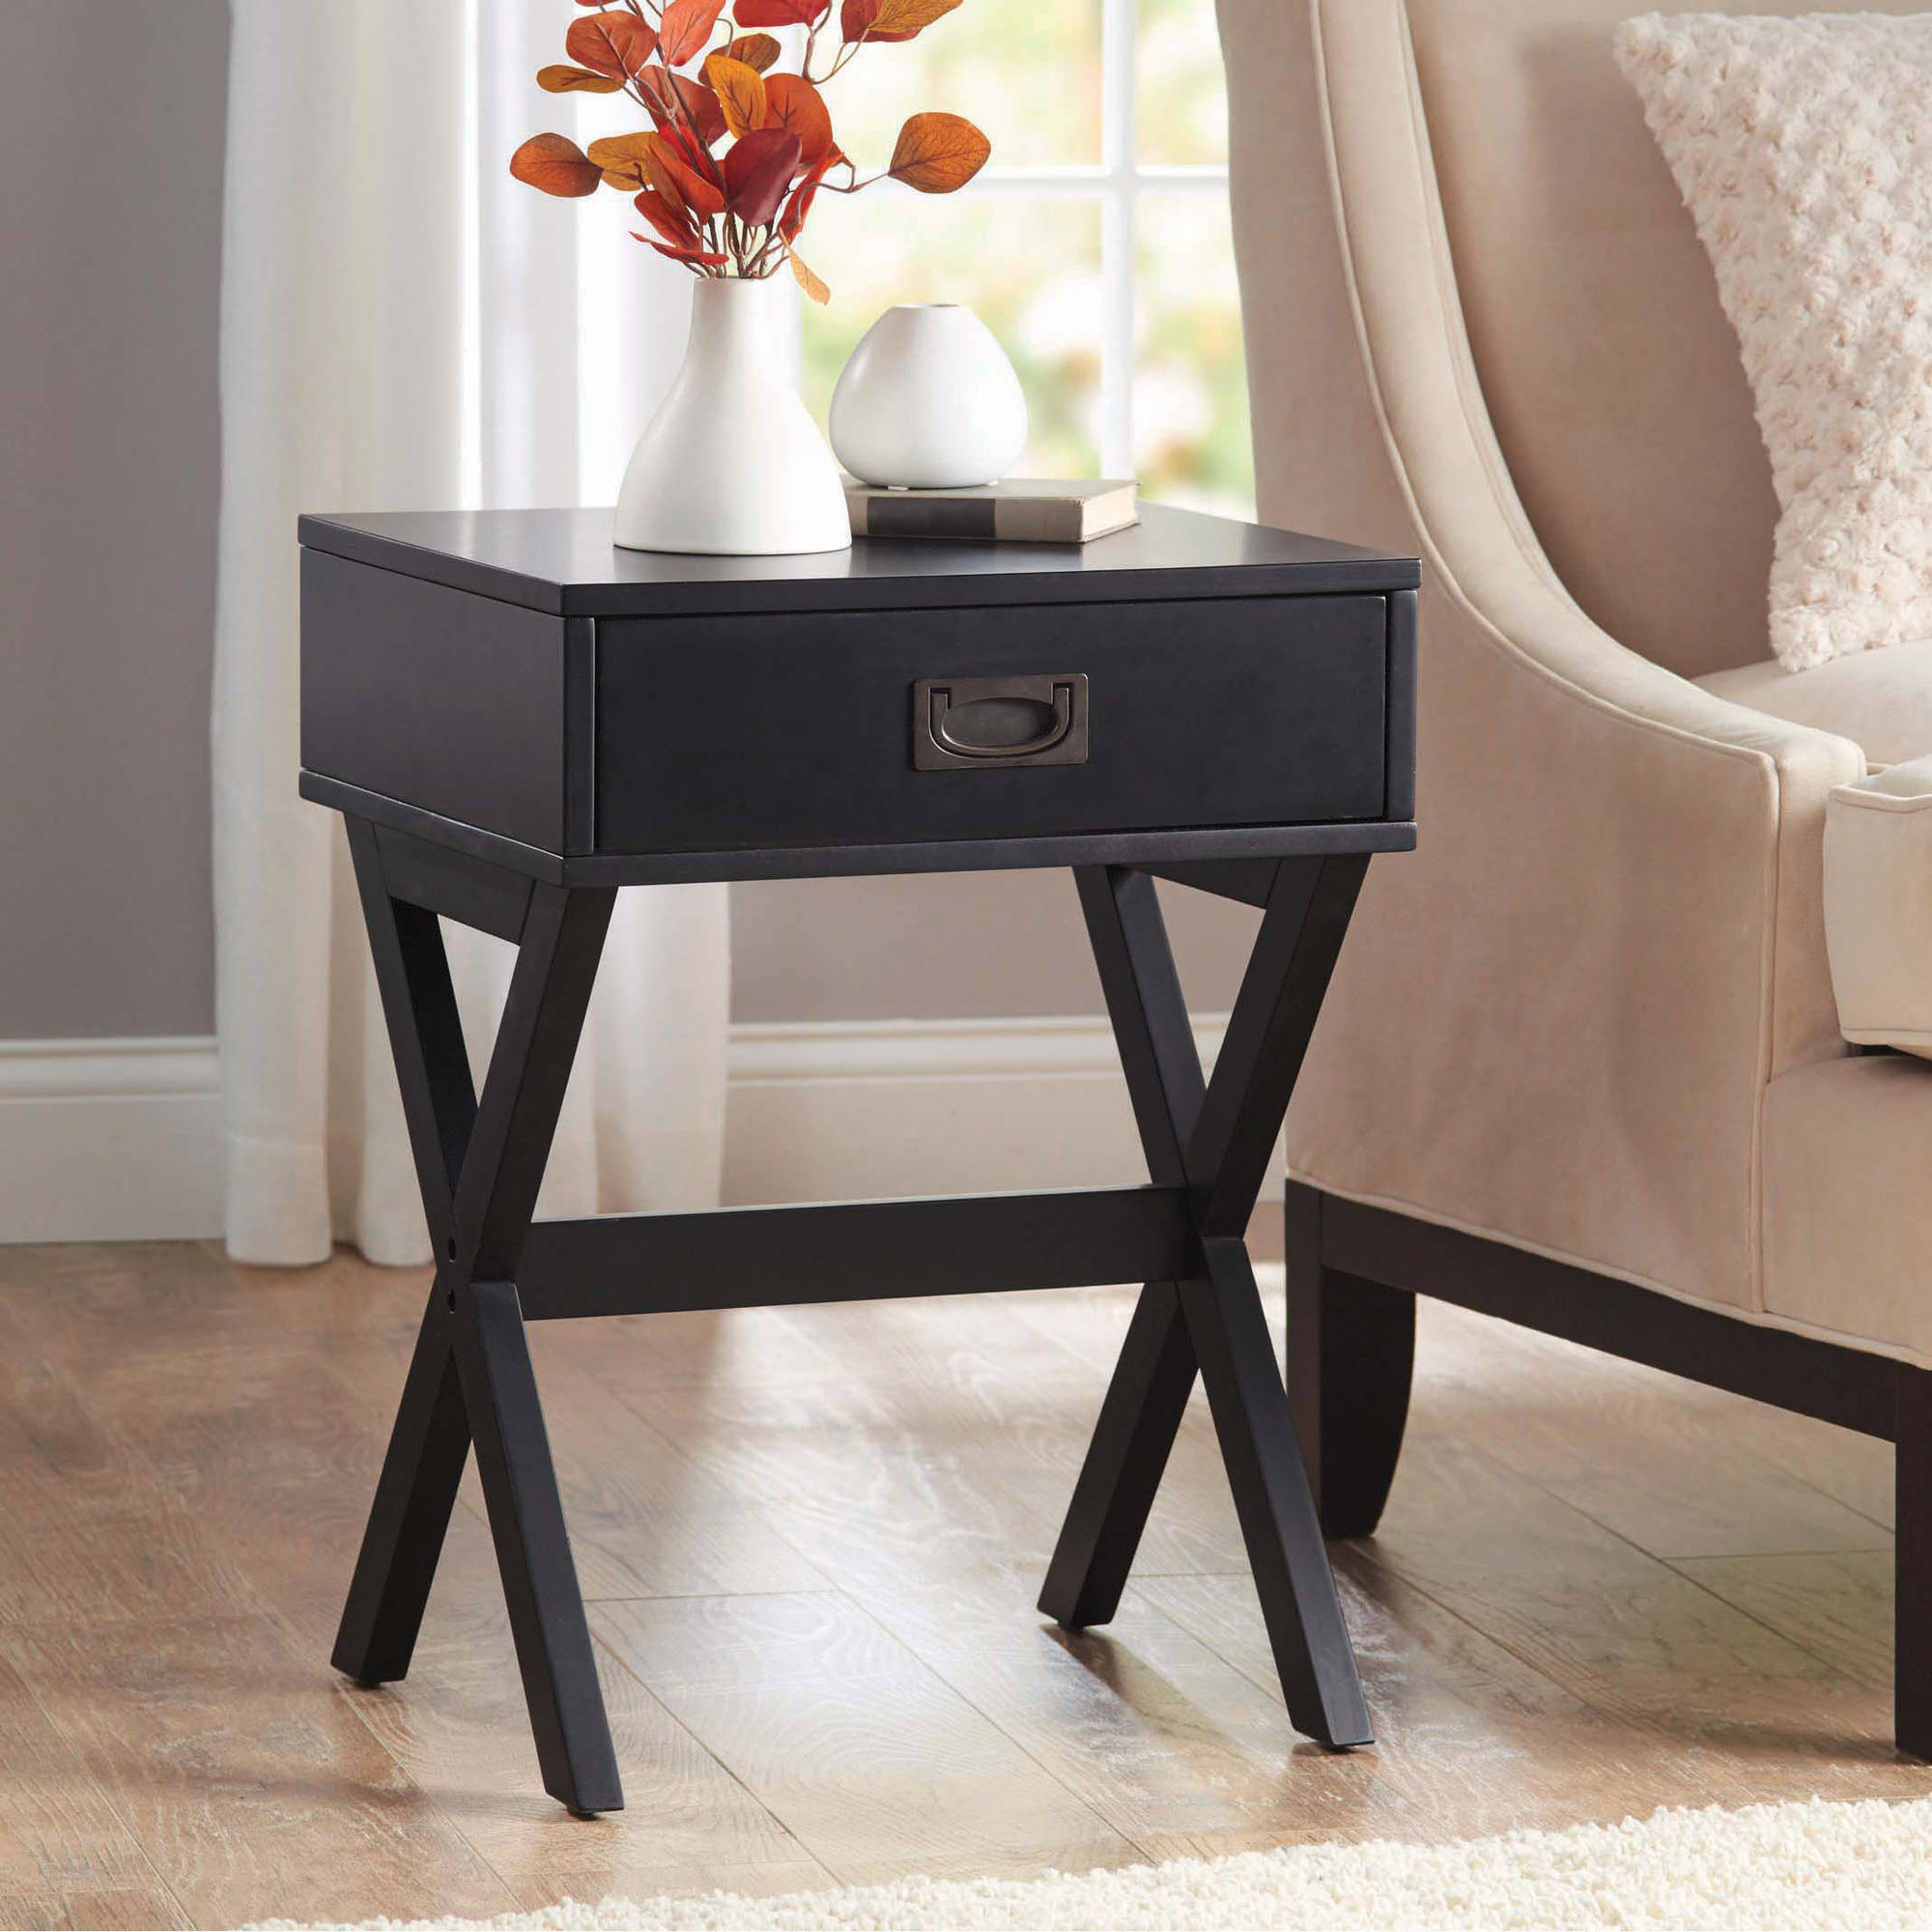 Black End Tables With Drawer Better Homes Gardens X Leg Accent Table With Drawer Multiple Colors